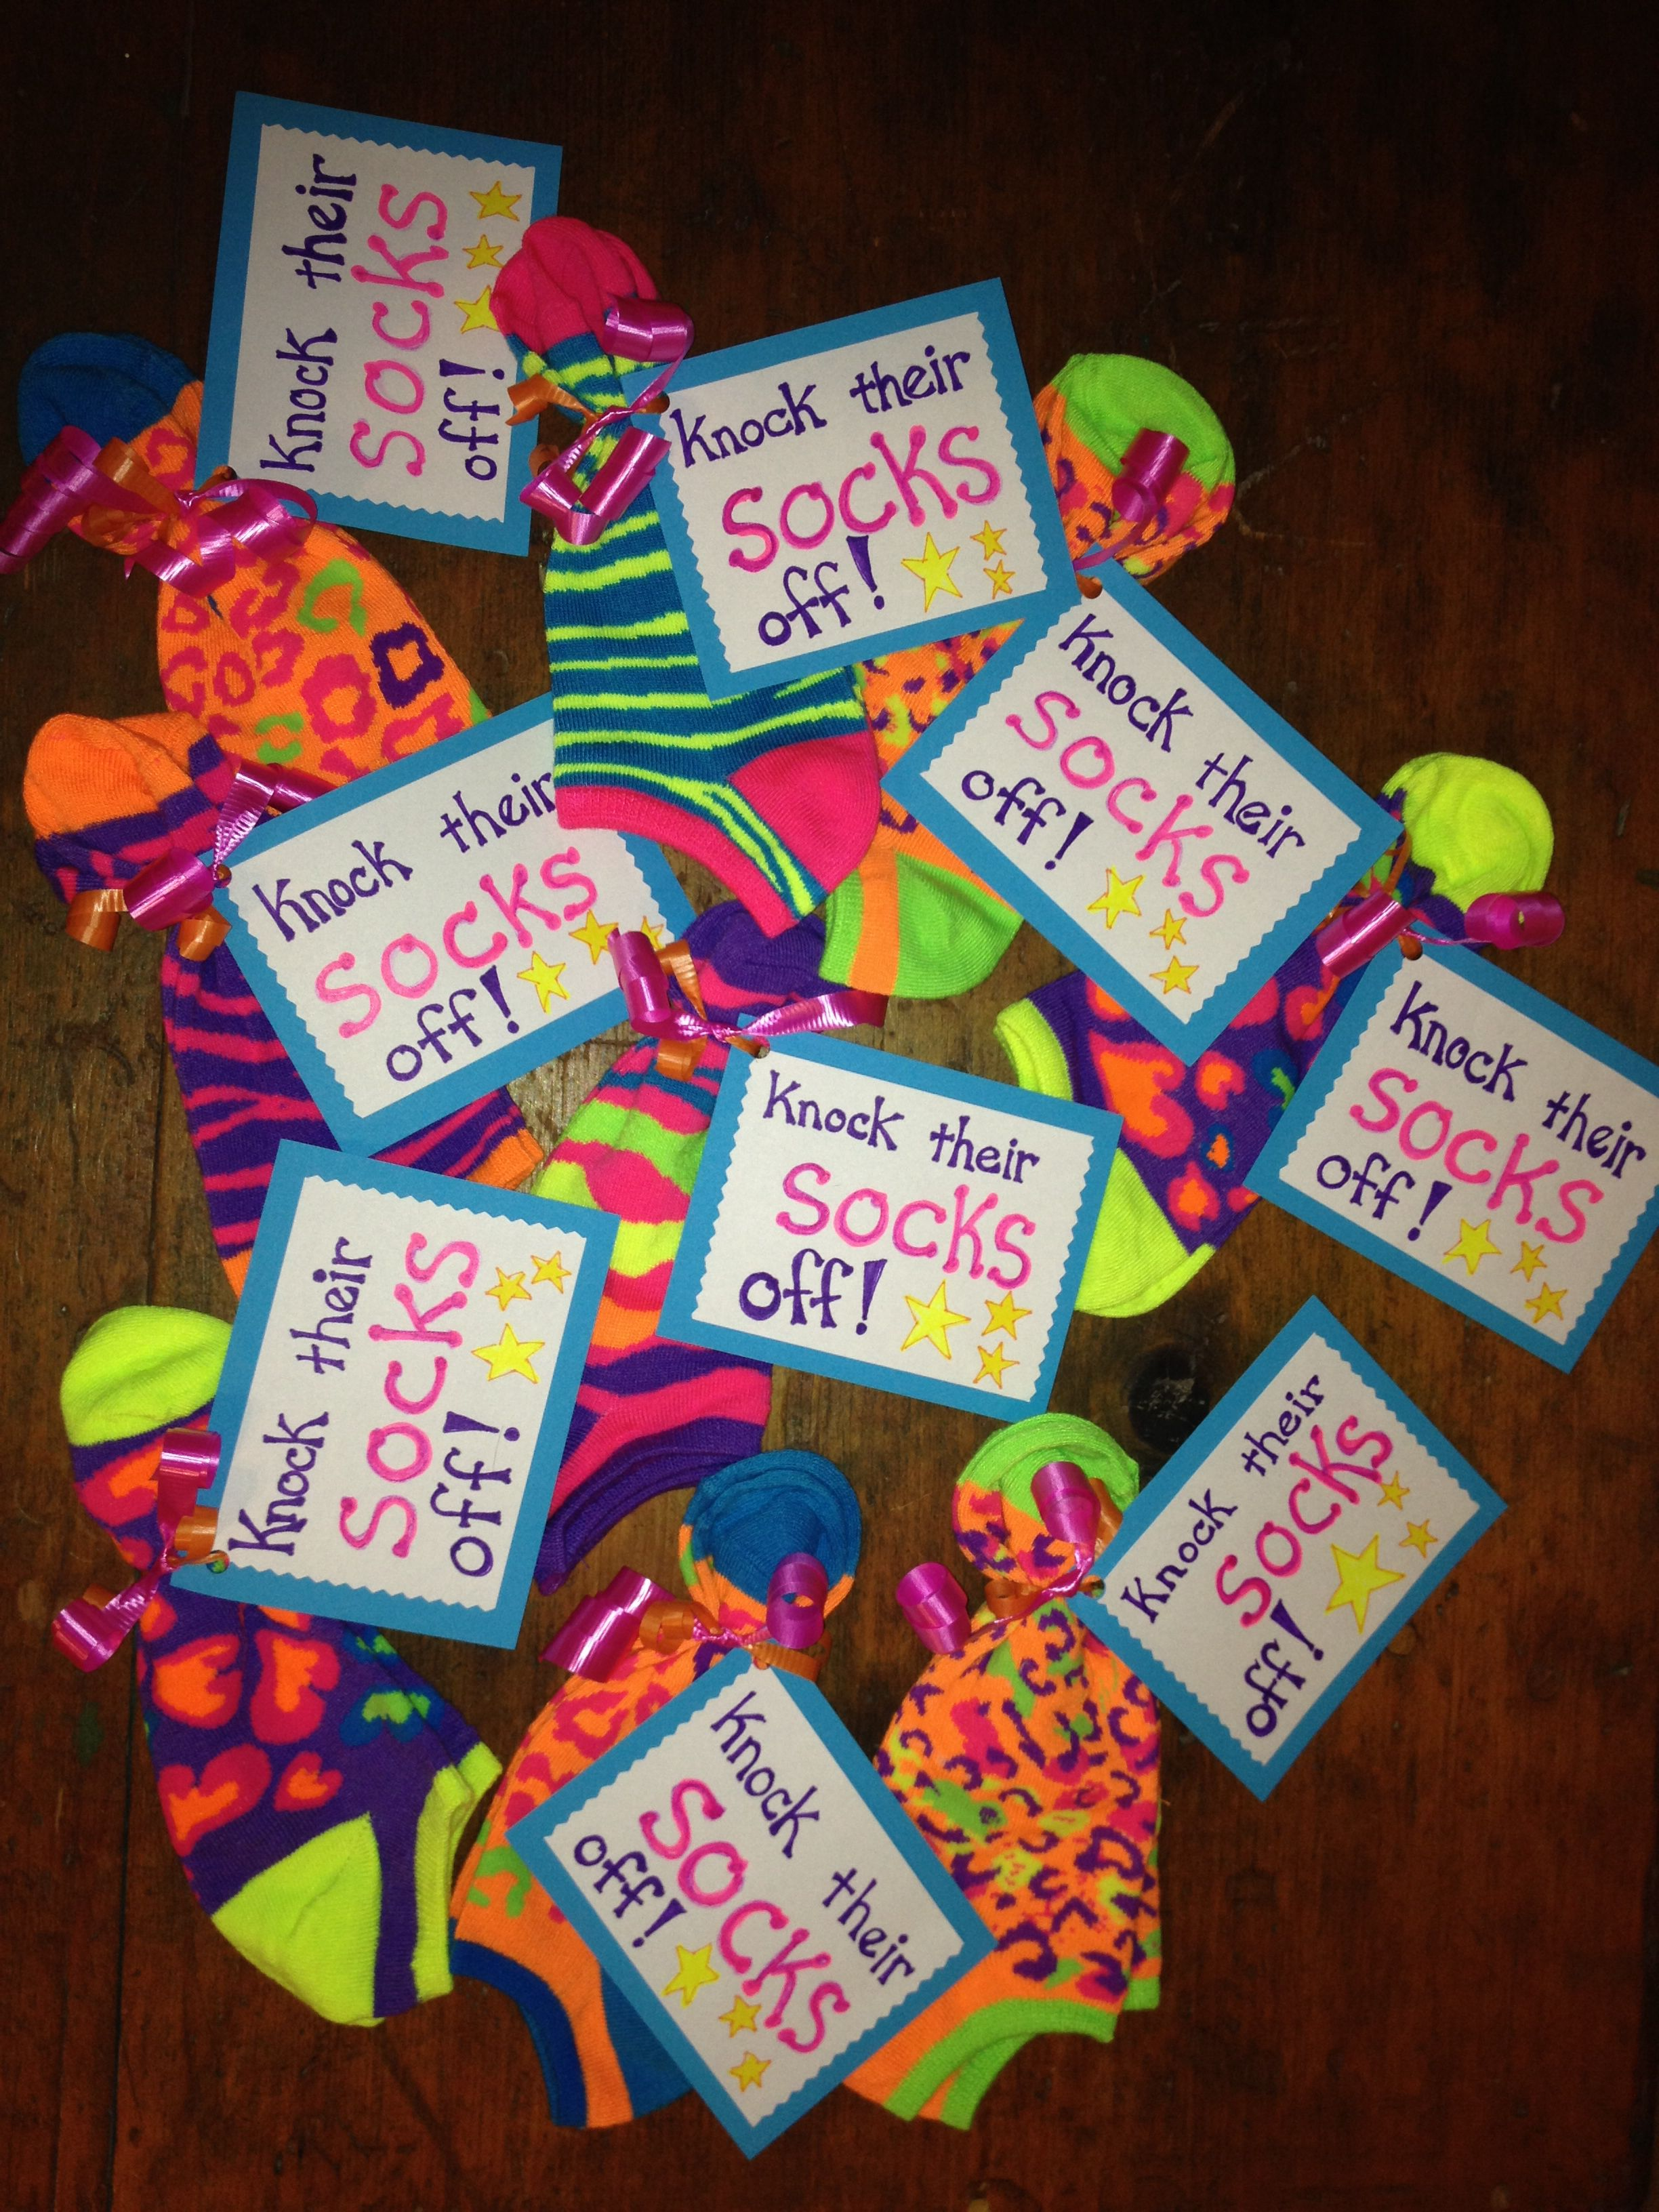 Pin By Elizabeth Lee Gaisford On Gift Ideas Cheerleading Gifts Dance Team Gifts Cheer Gifts